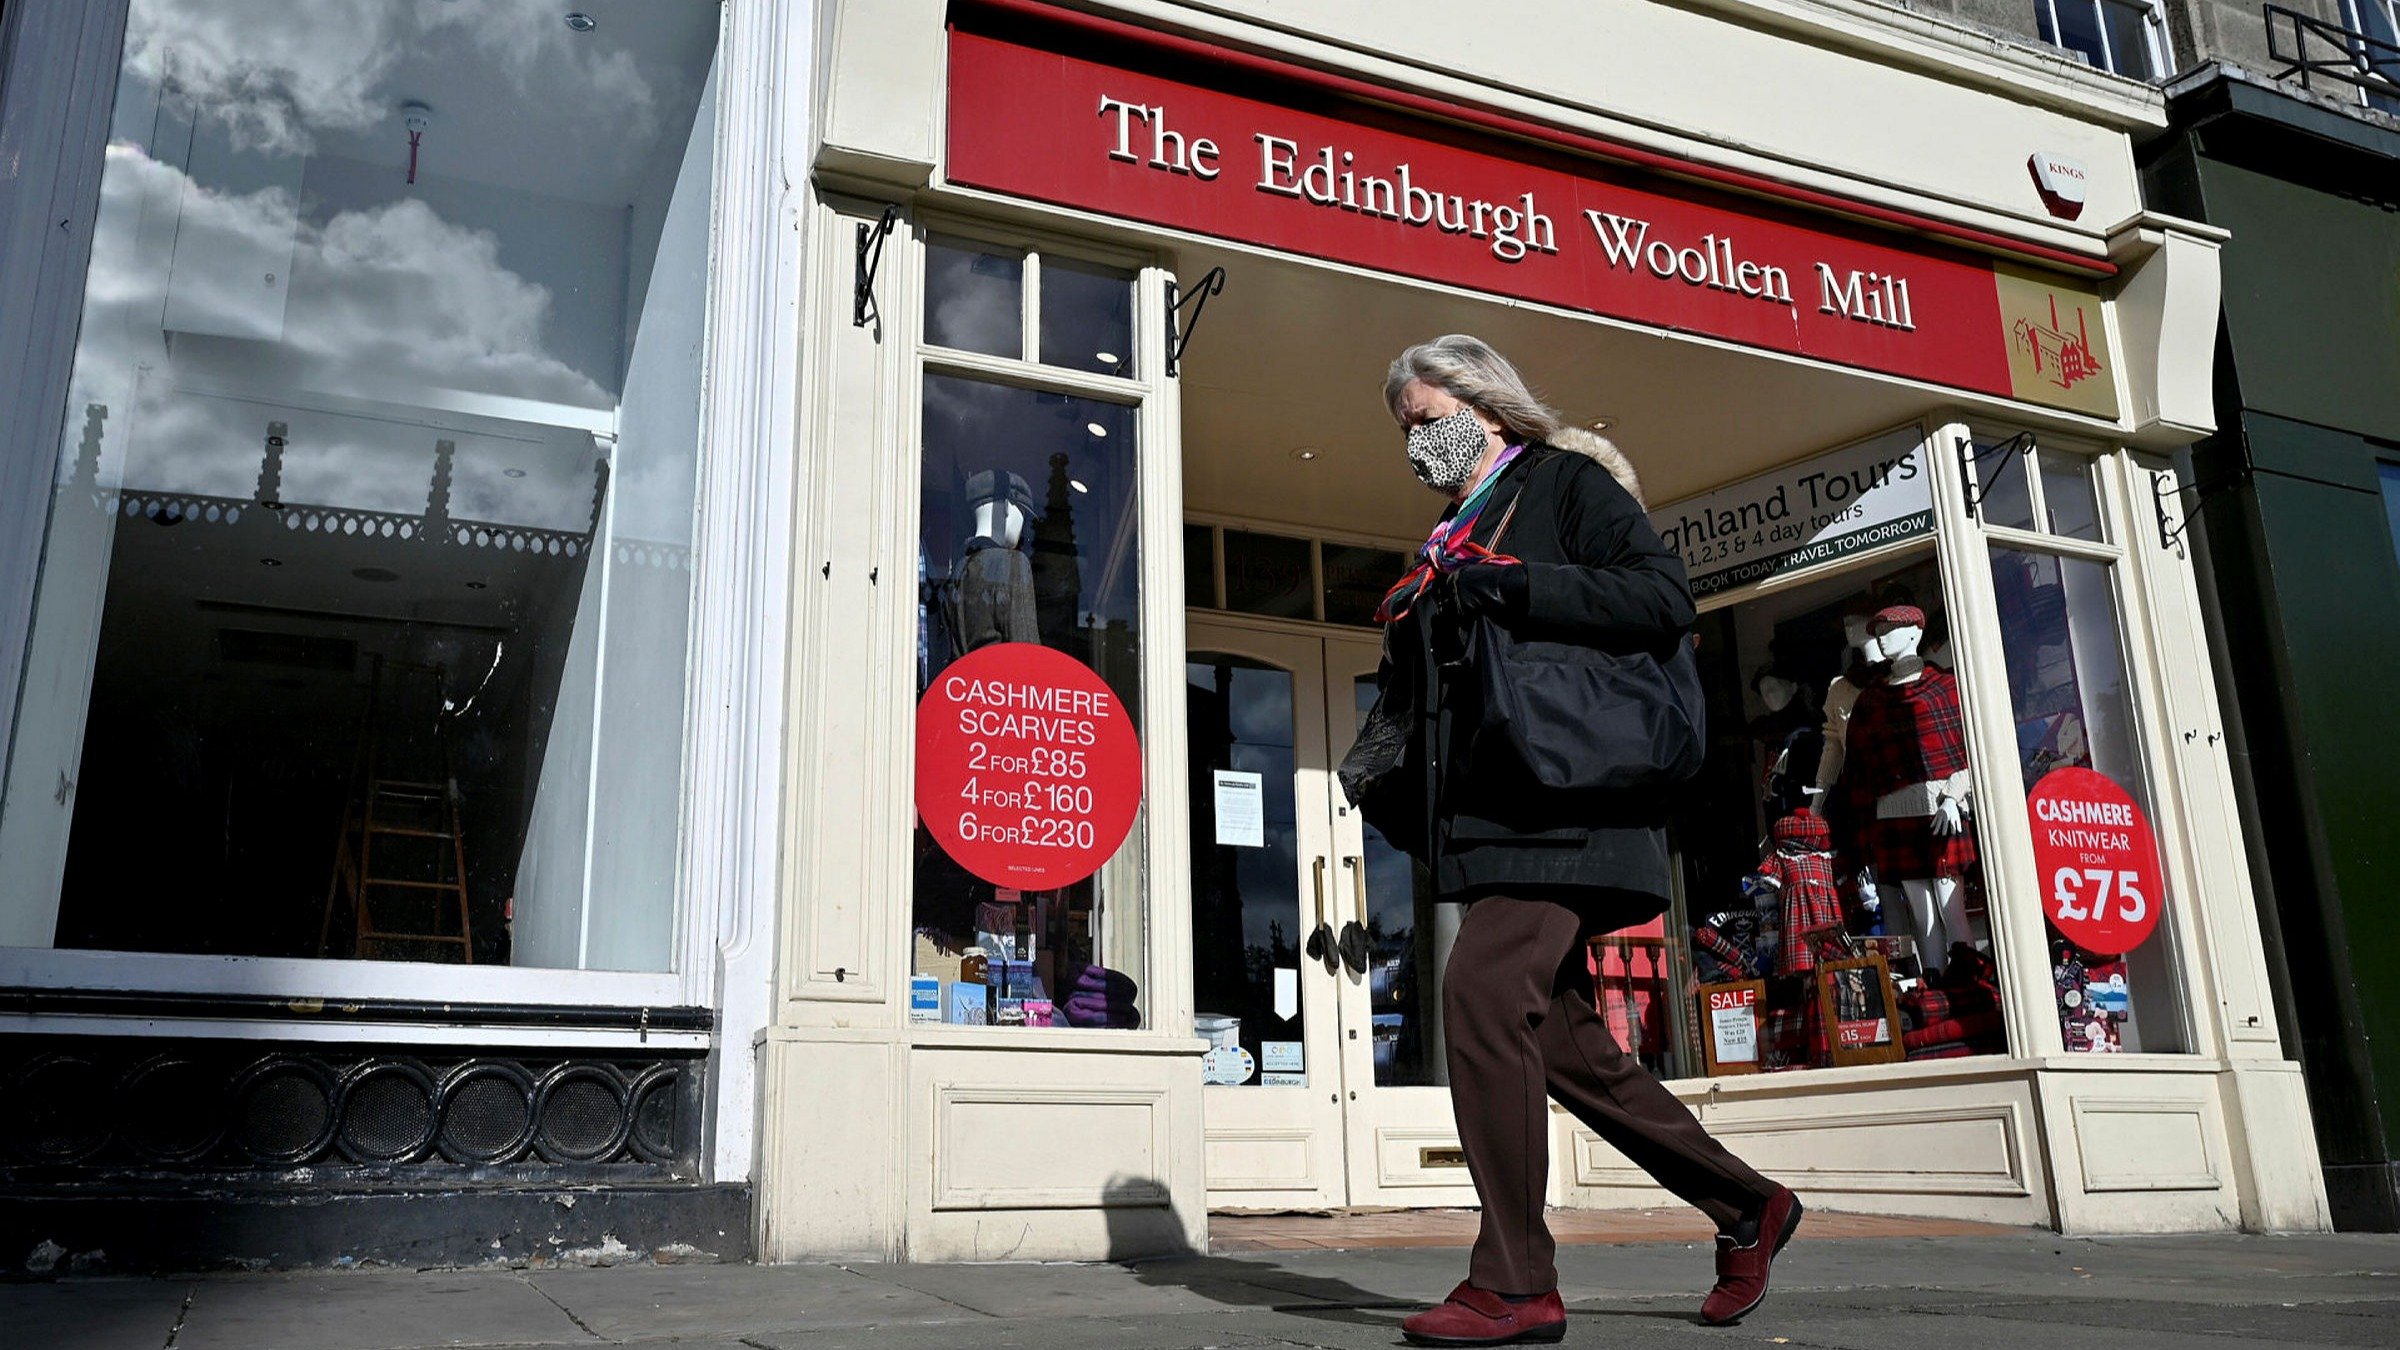 Edinburgh Woollen Mill Granted More Time To Find Buyer Financial Times